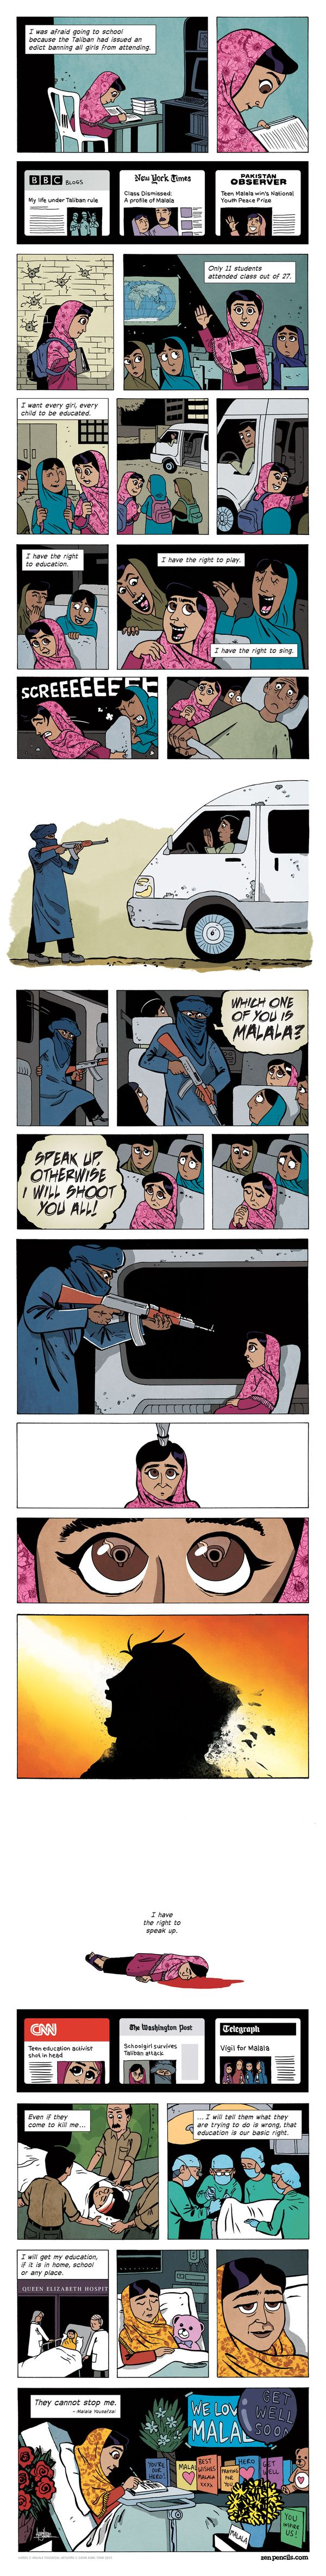 Zen Pencils Comic Strip on GoComics.com...I cannot believe how much hate is poured out towards this girl, some of the vile comments in the papers whenever she is mentioned are unbelievable.